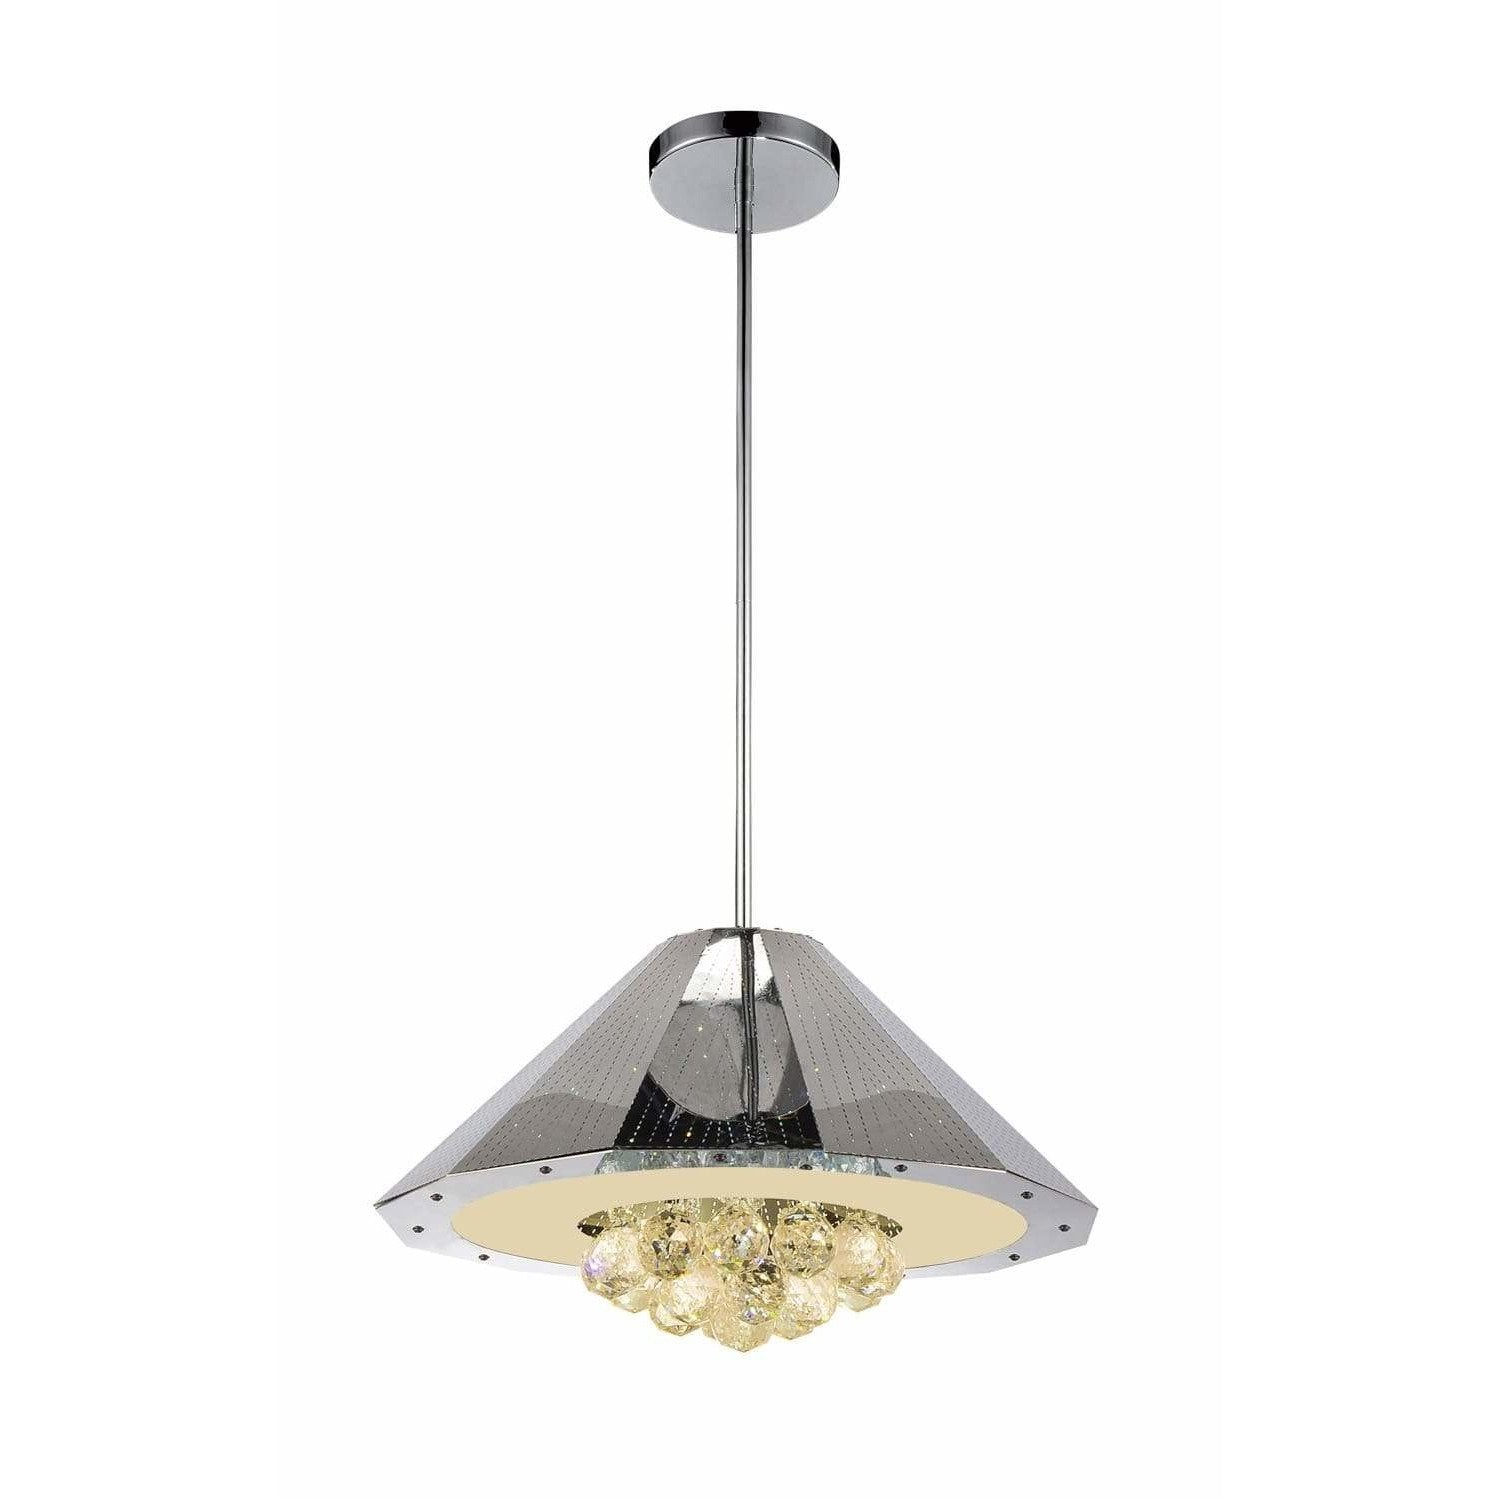 CWI Lighting Chandeliers Chrome Yangtze 6 Light Down Chandelier with Chrome finish by CWI Lighting 5666P18C